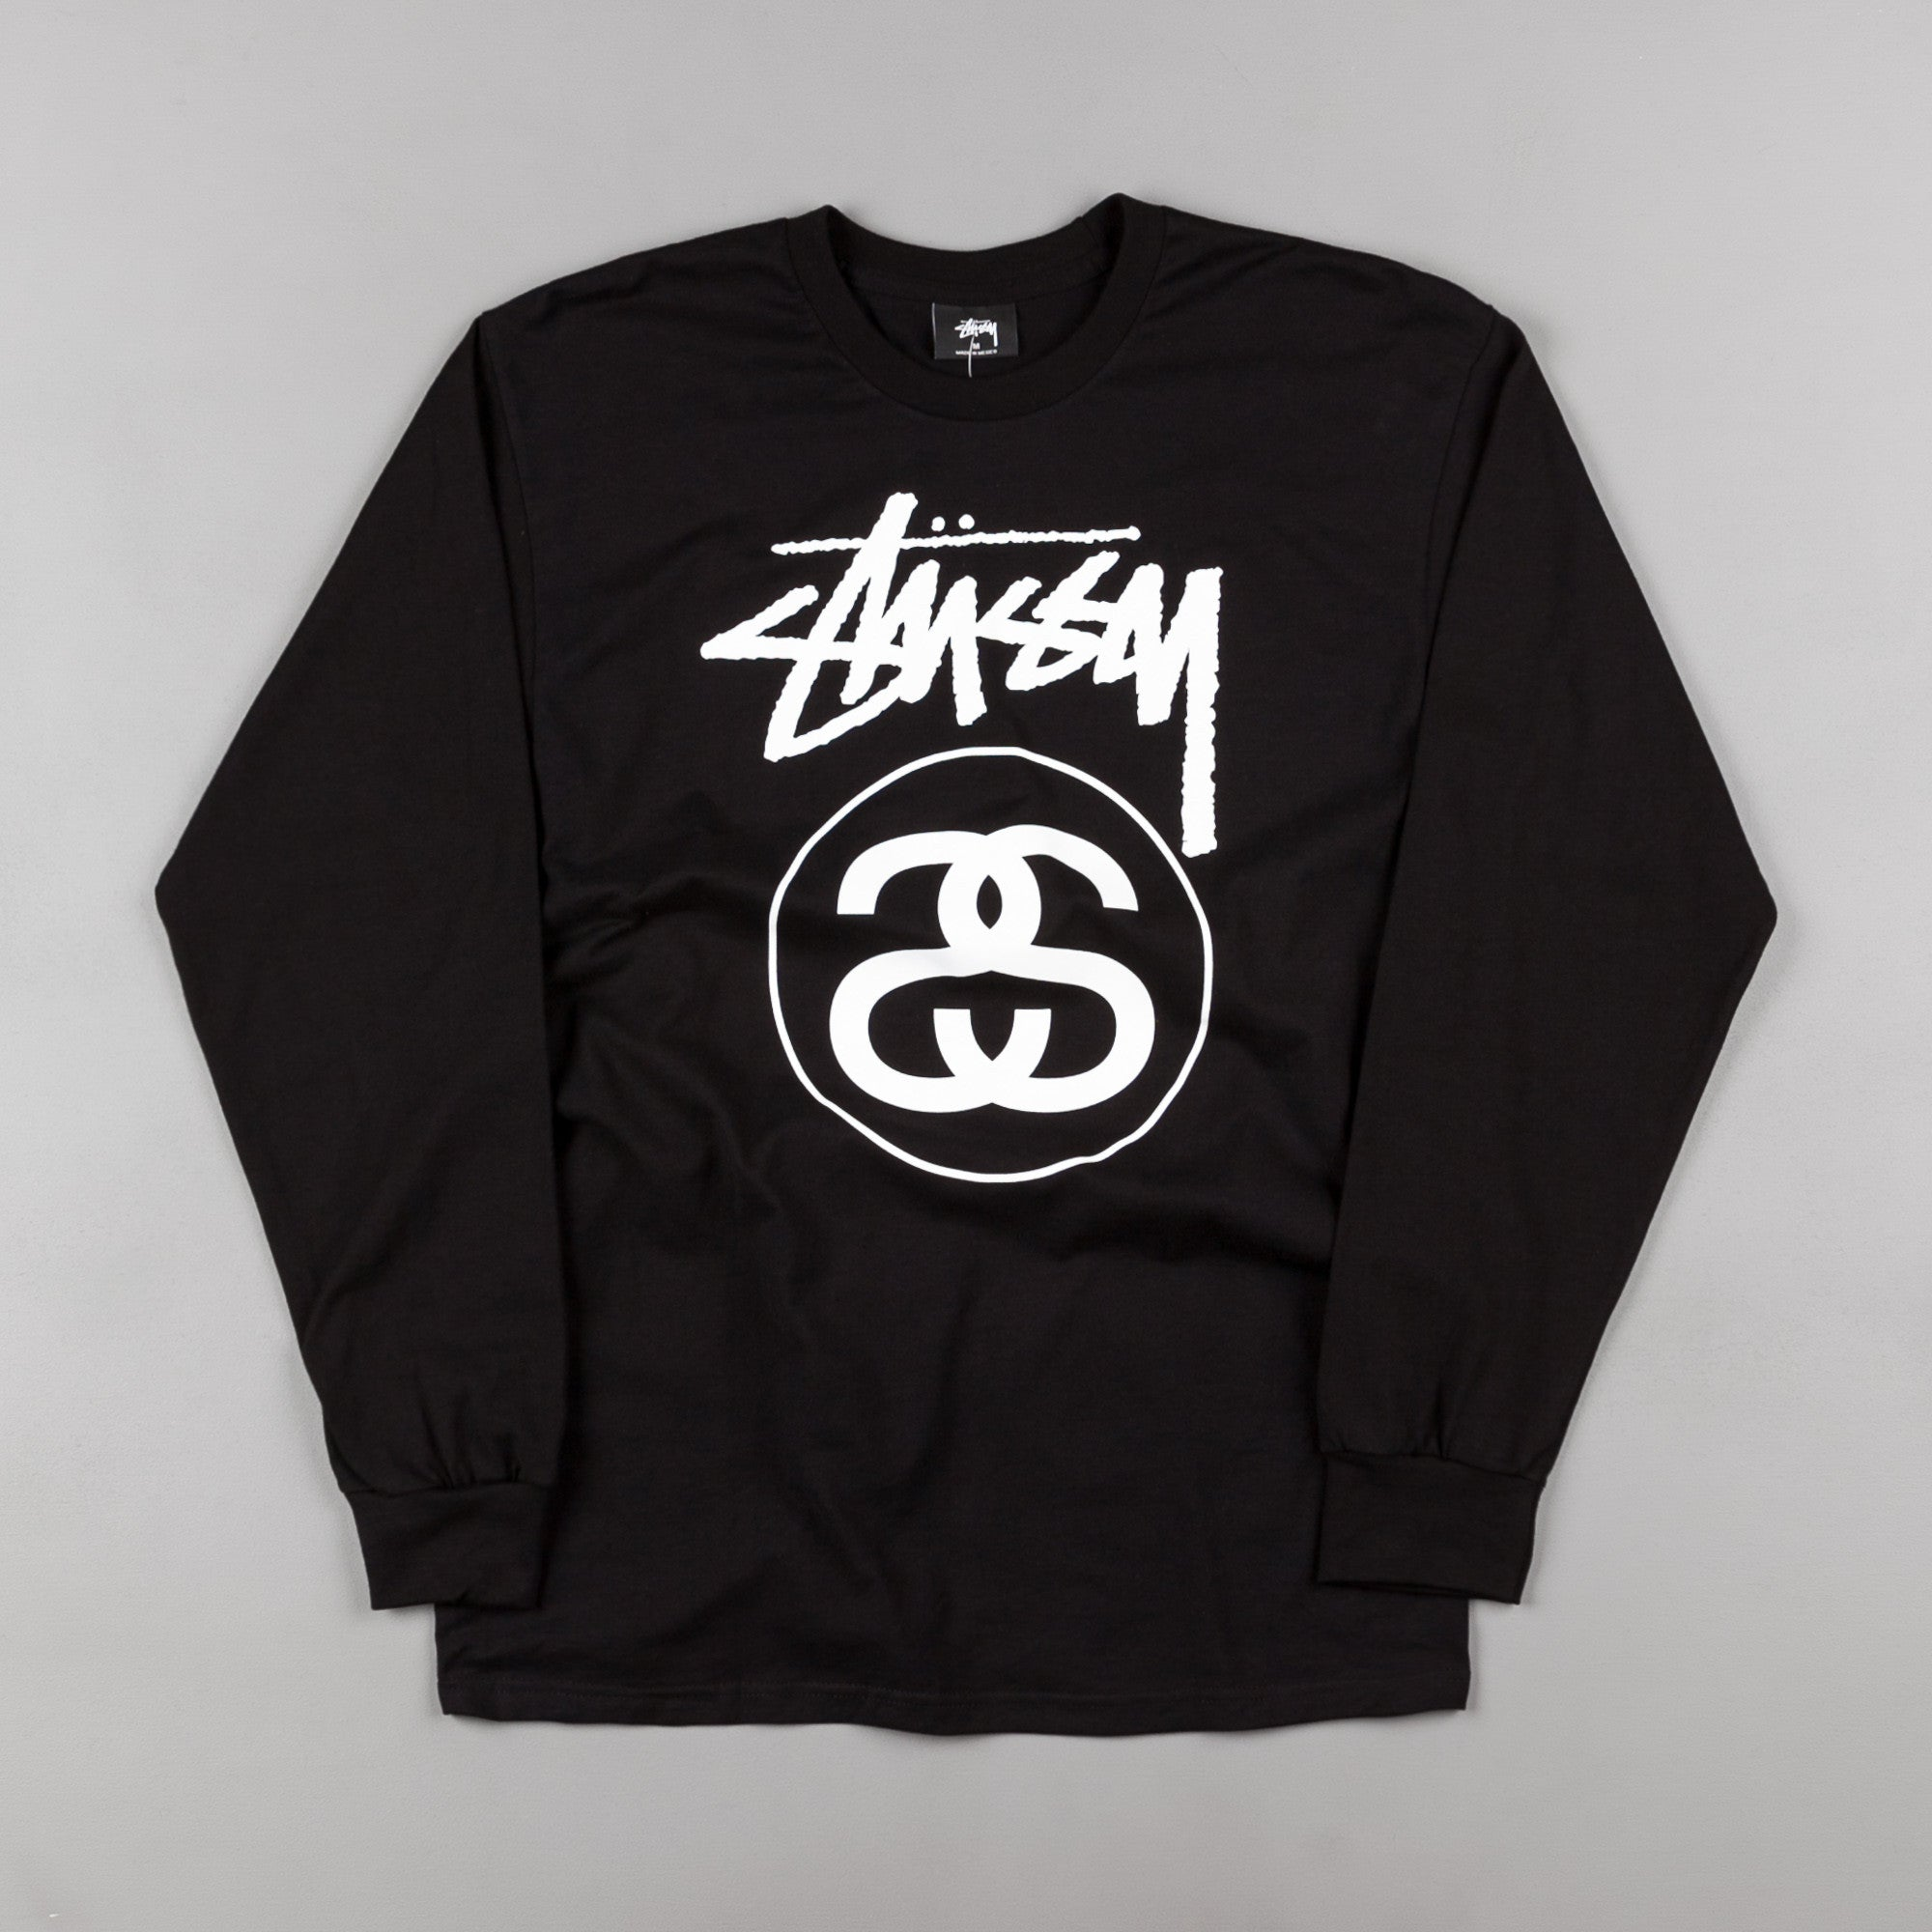 Stussy Stock Link Long Sleeve T-Shirt - Black